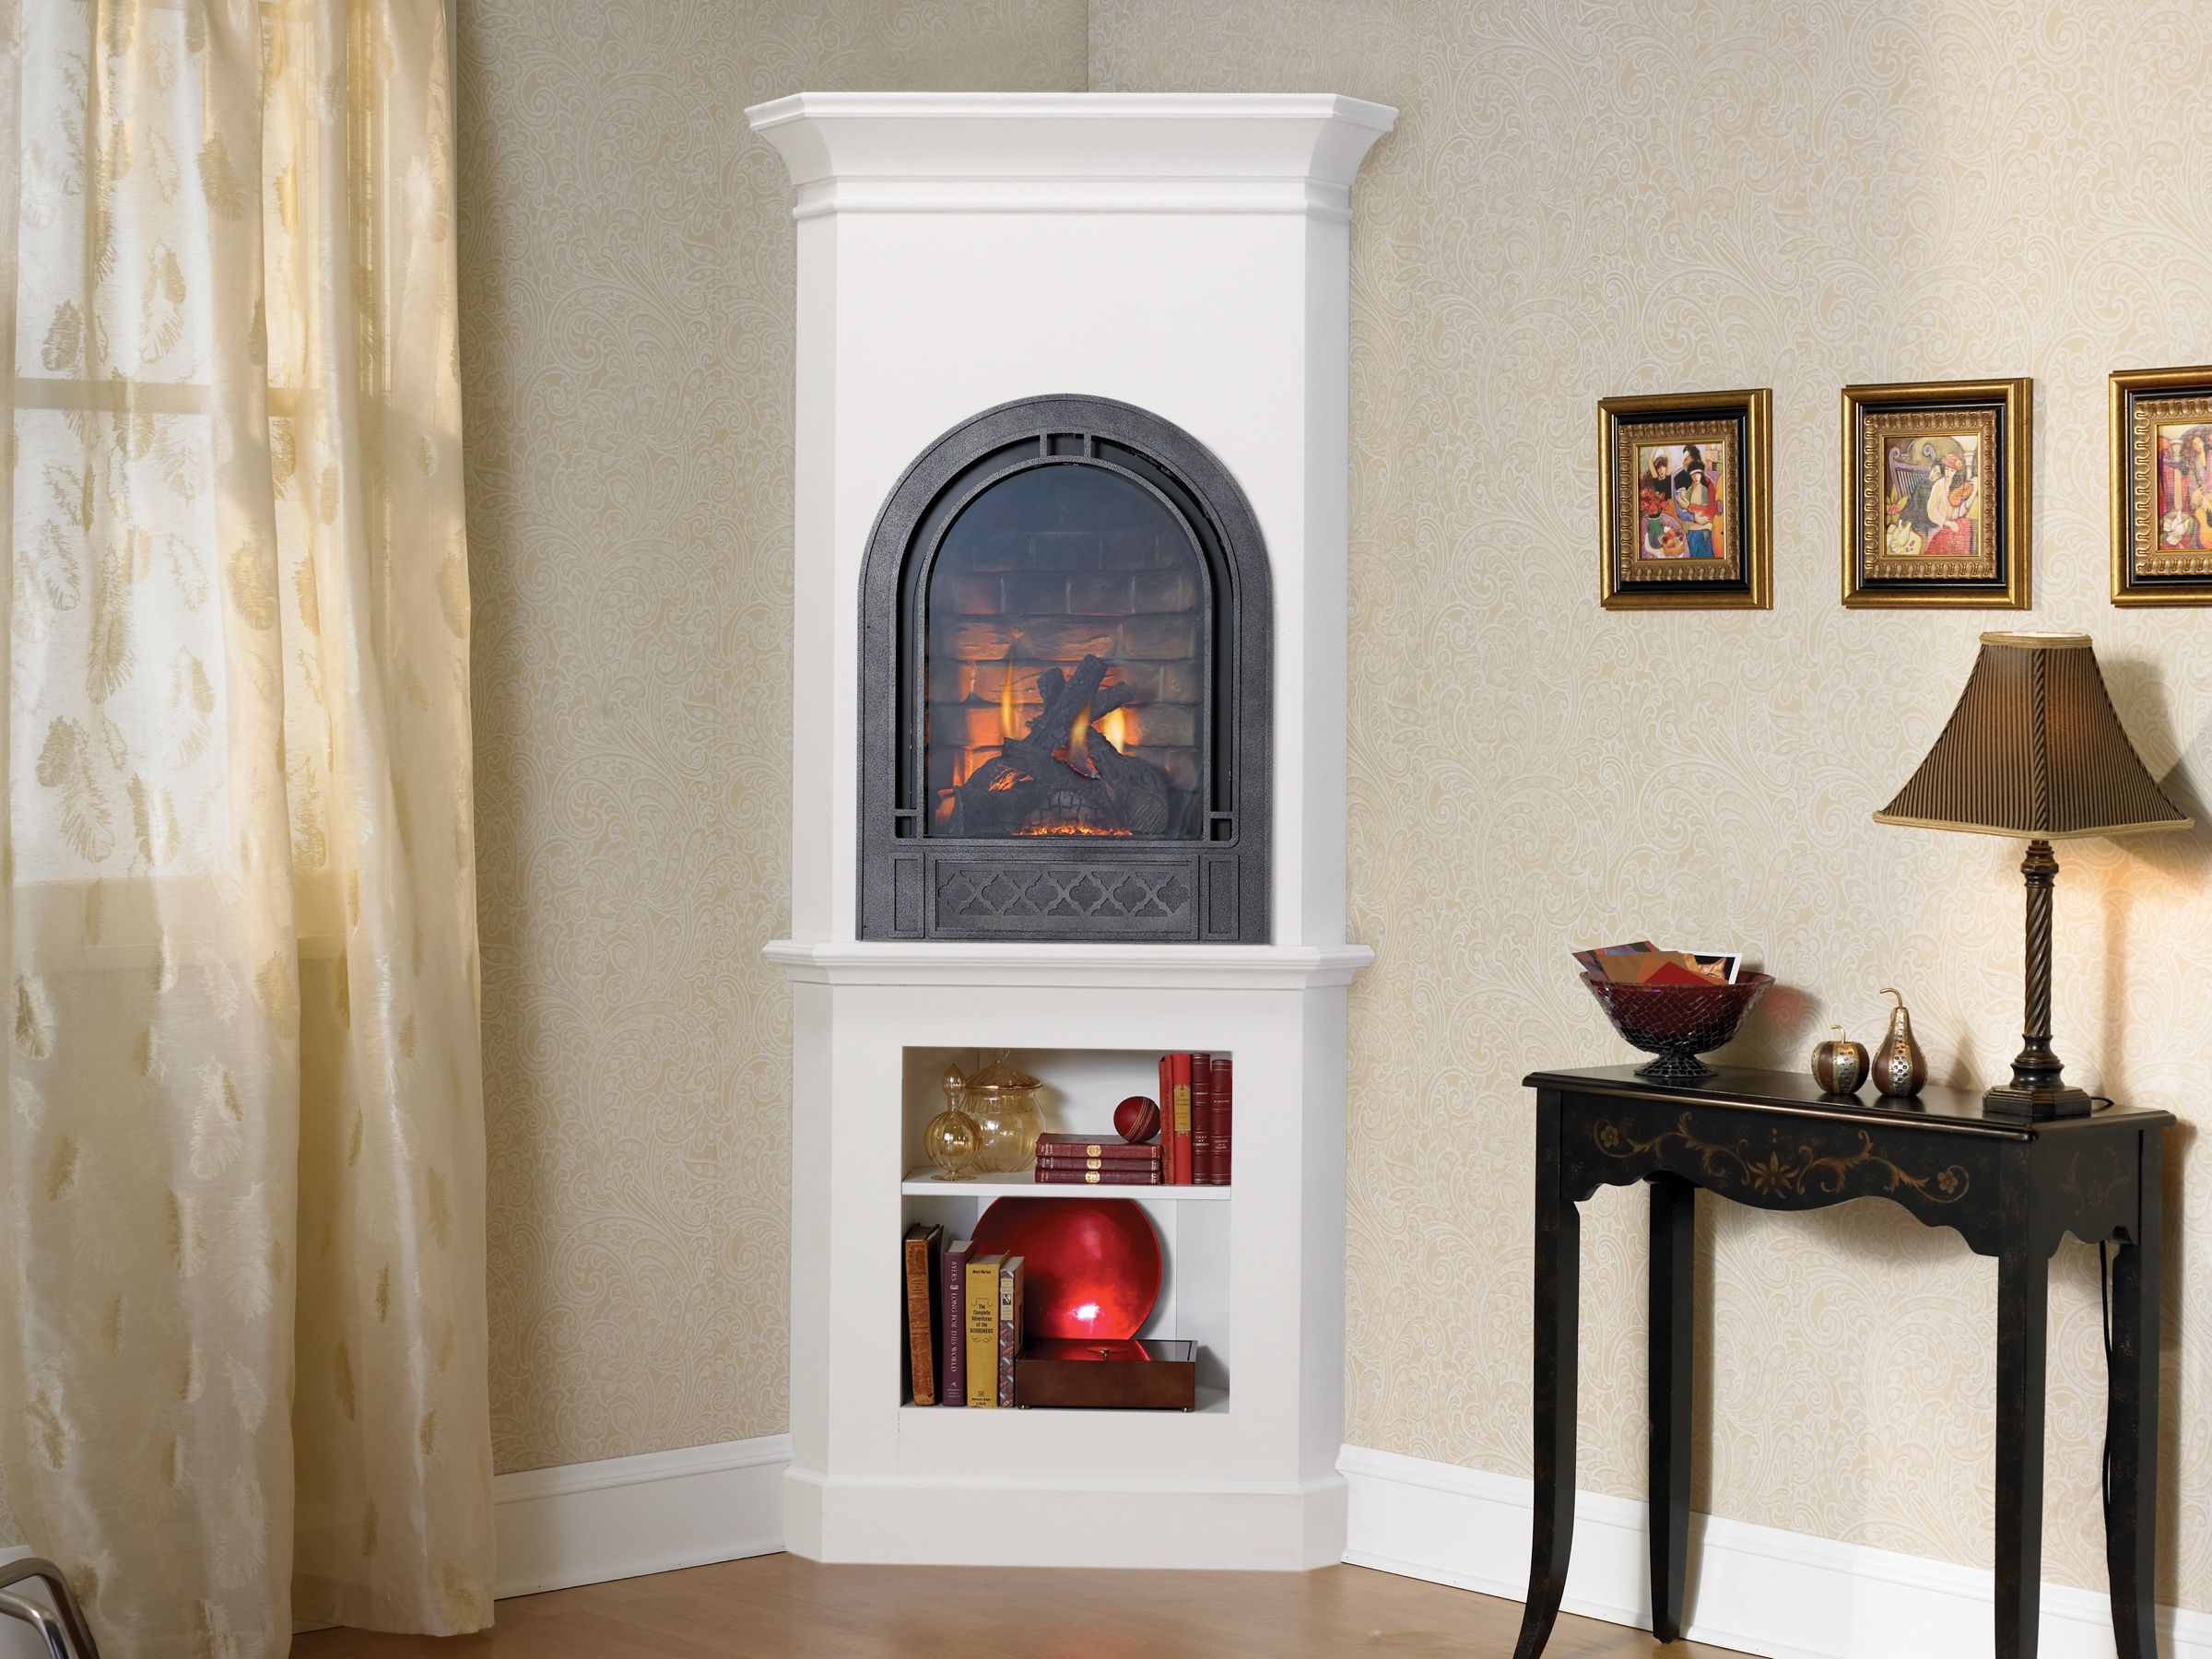 Heat N Glo Gas Fireplace Crescent Ii By Heat N Glo Is Ideal For A Smaller Space Fake